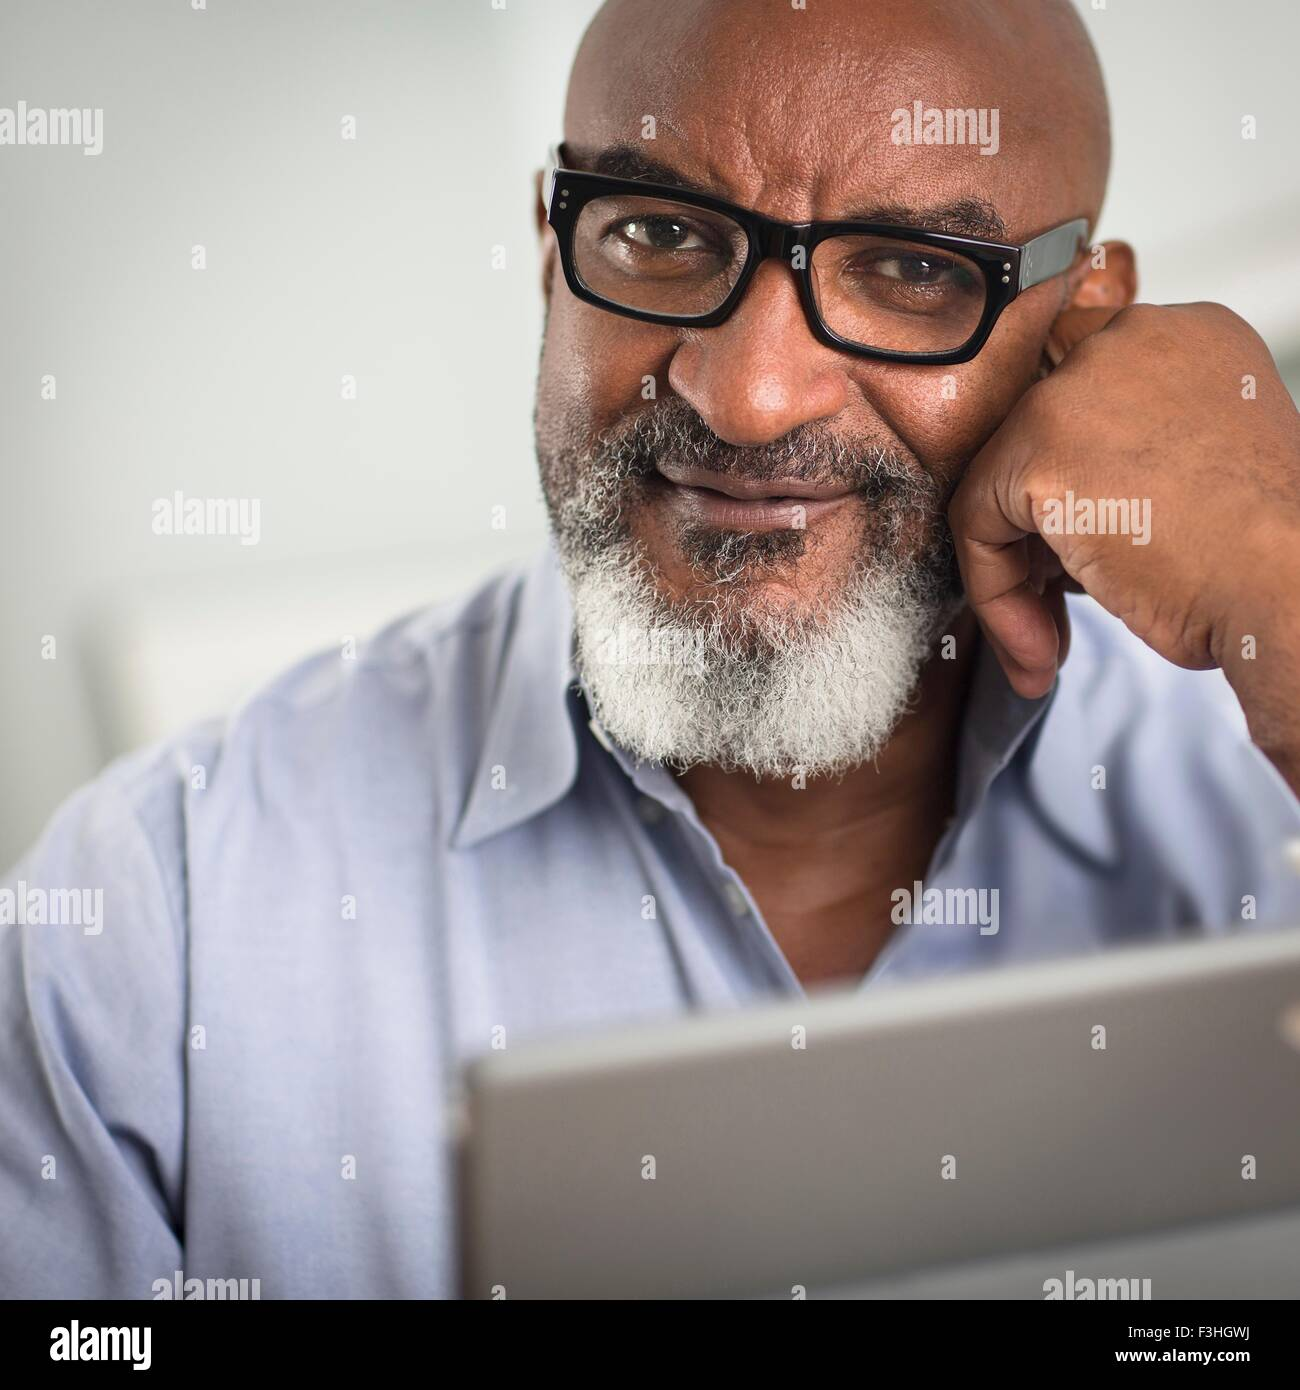 Portrait of mature man with greying beard and glasses, looking at camera smiling - Stock Image